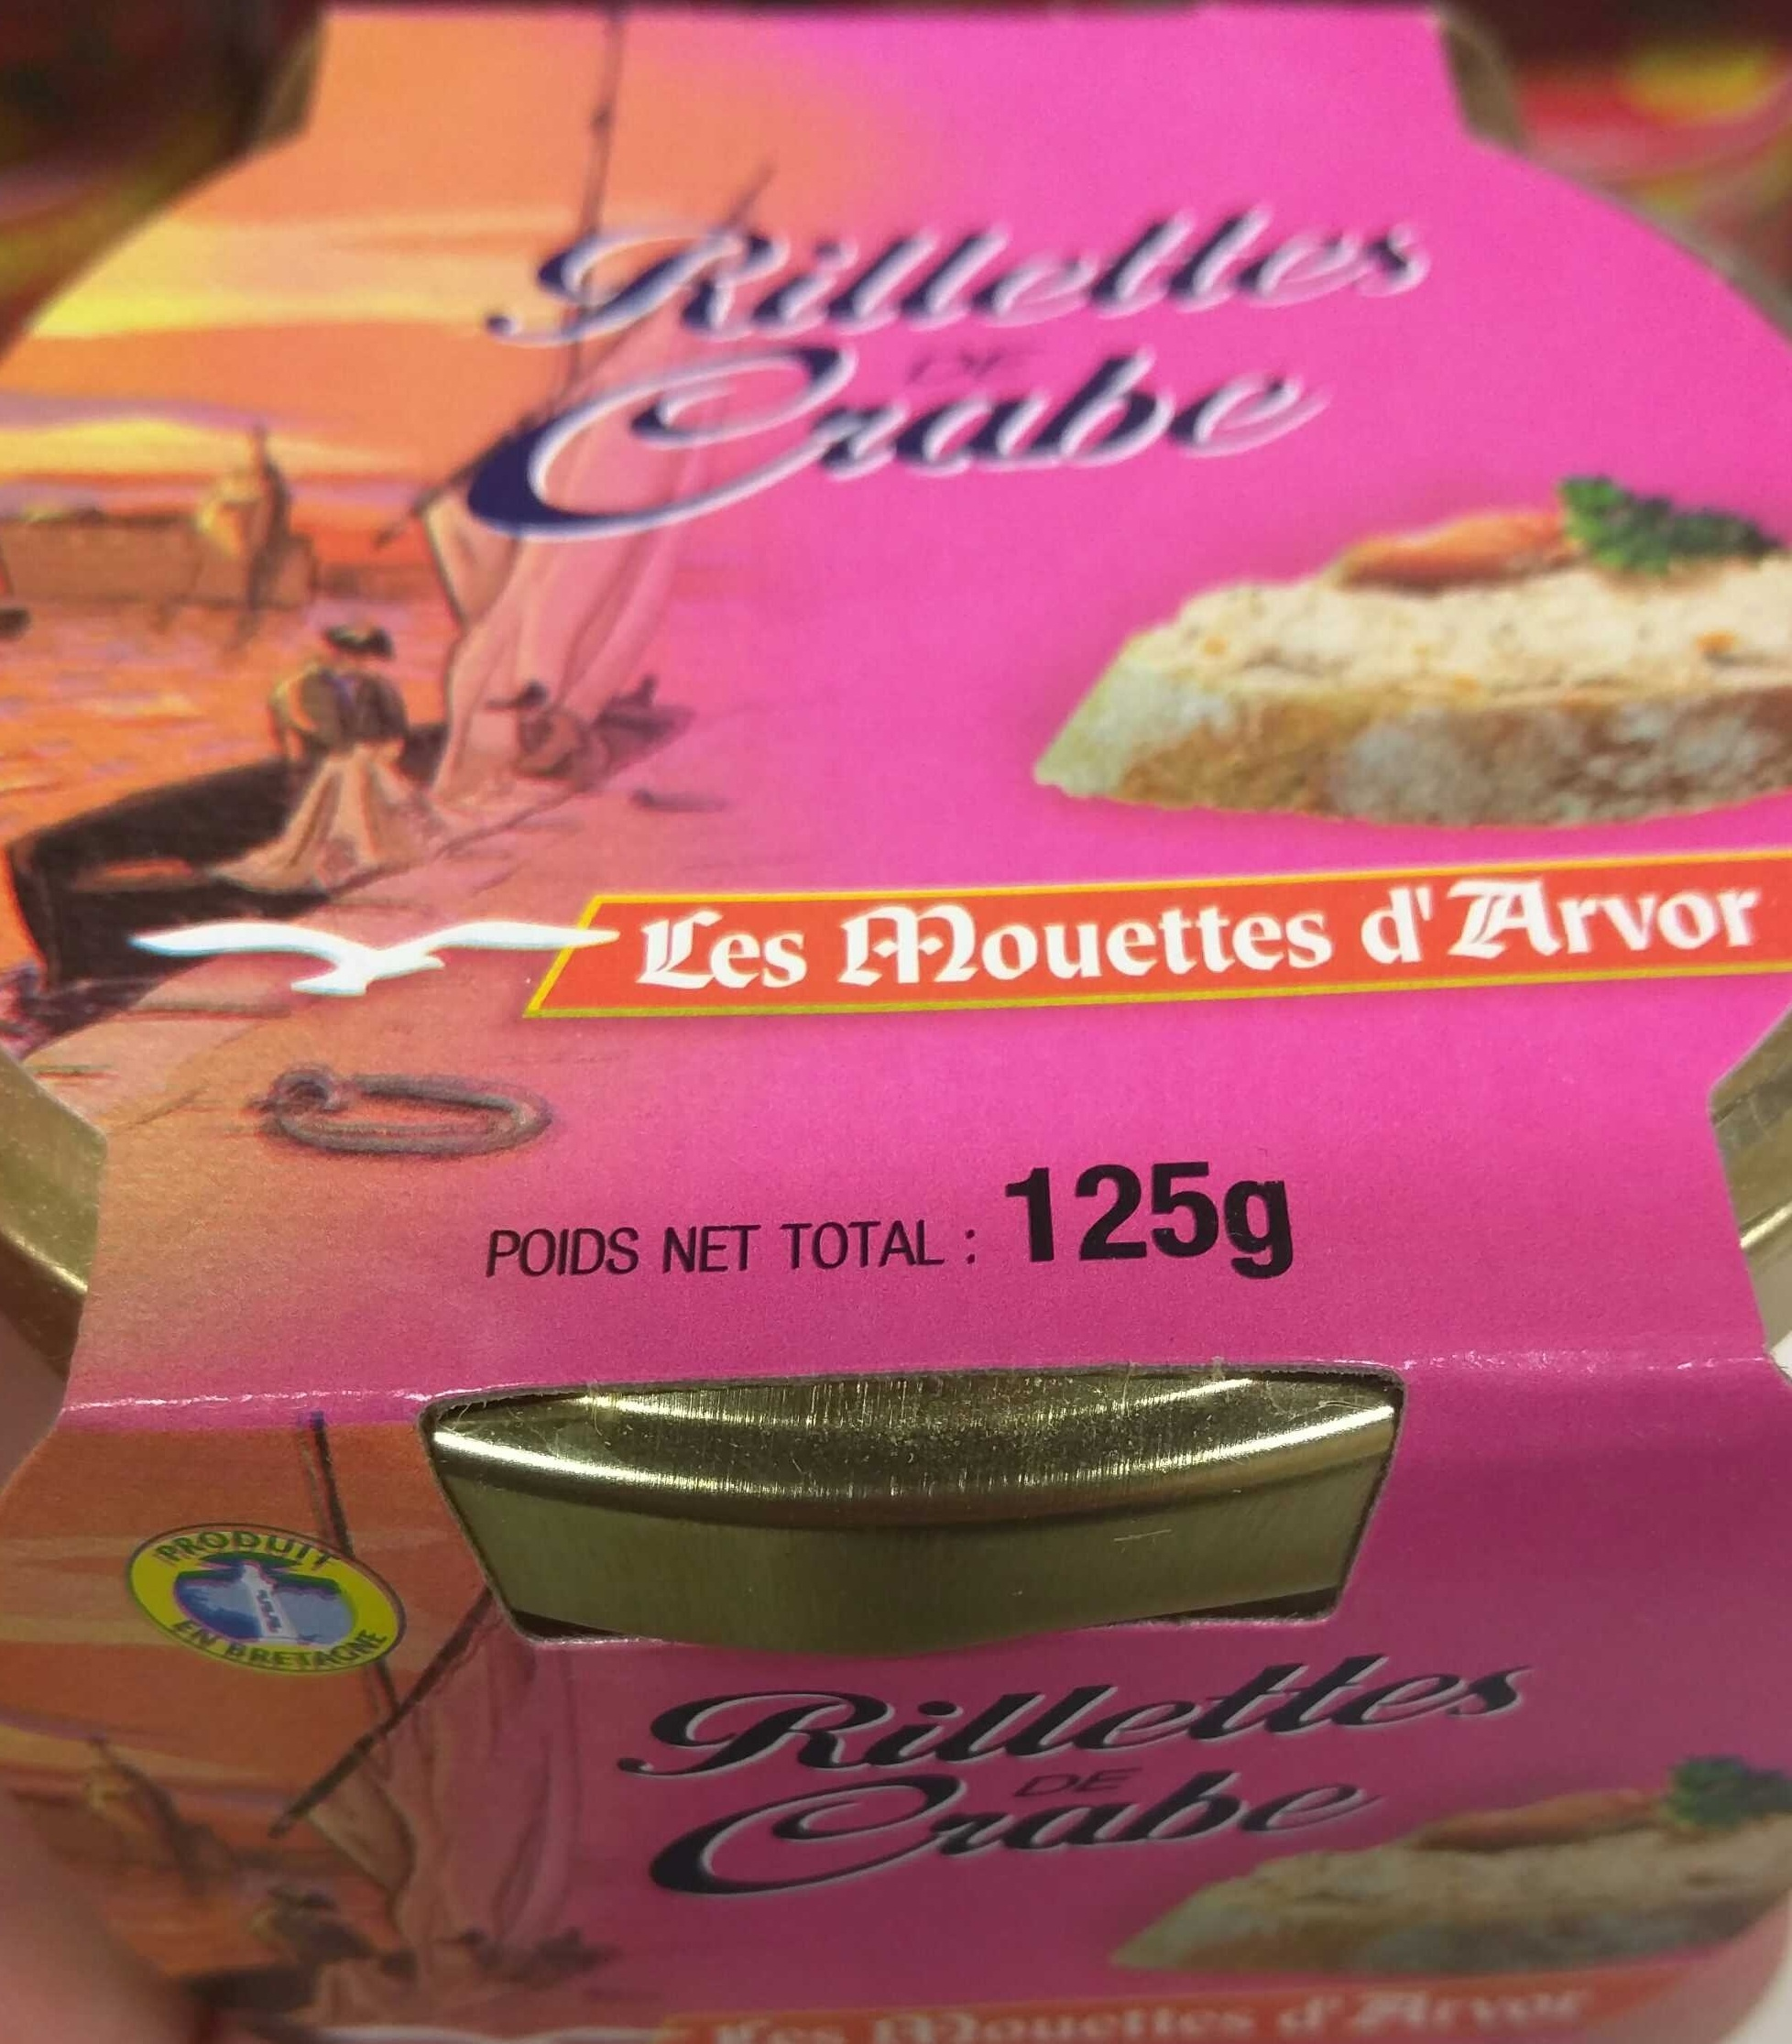 Rillettes de Crabe - Product